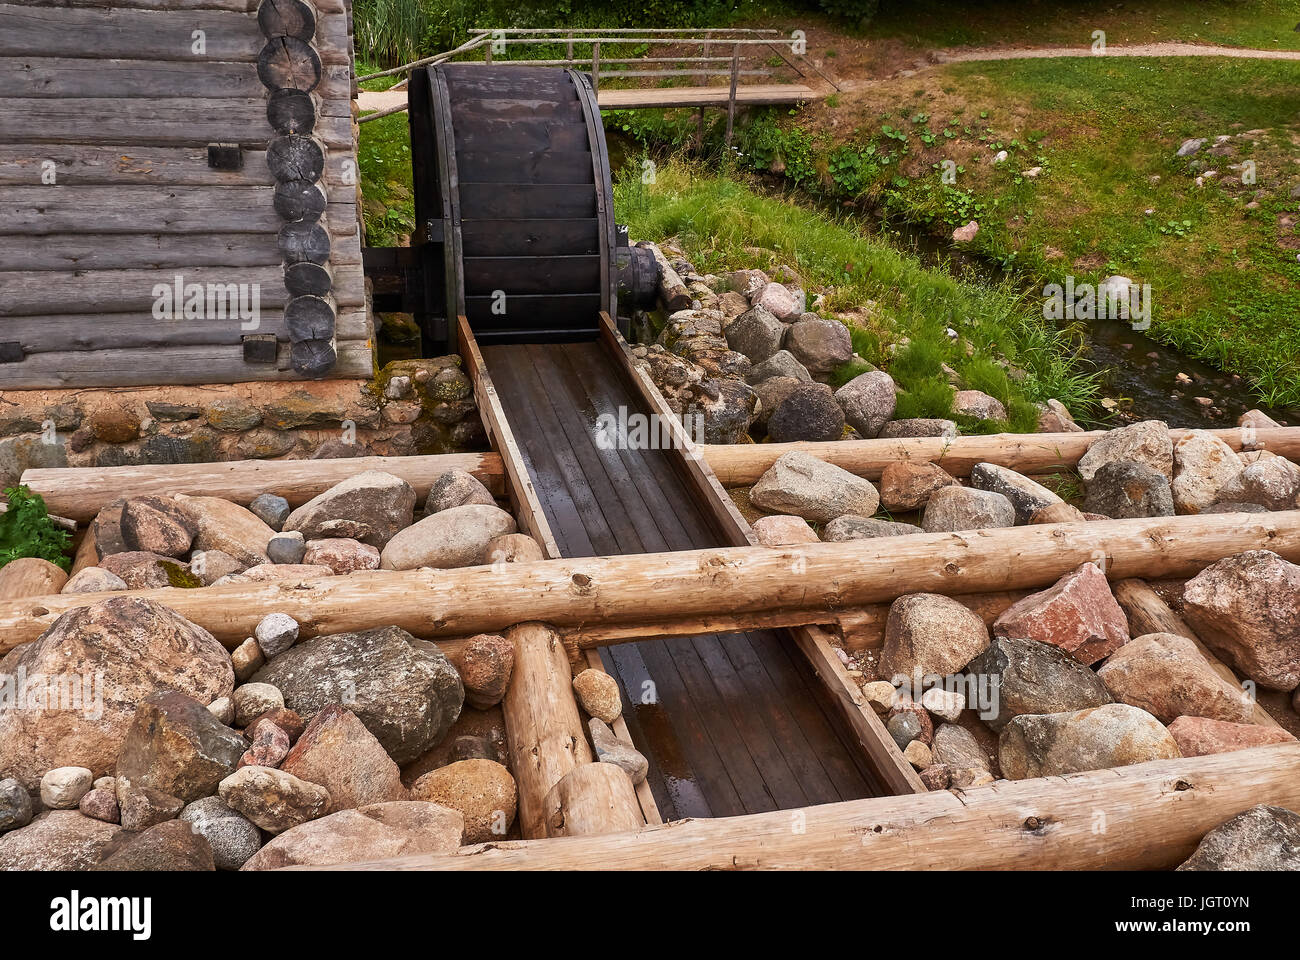 timber dam stockfotos timber dam bilder alamy. Black Bedroom Furniture Sets. Home Design Ideas